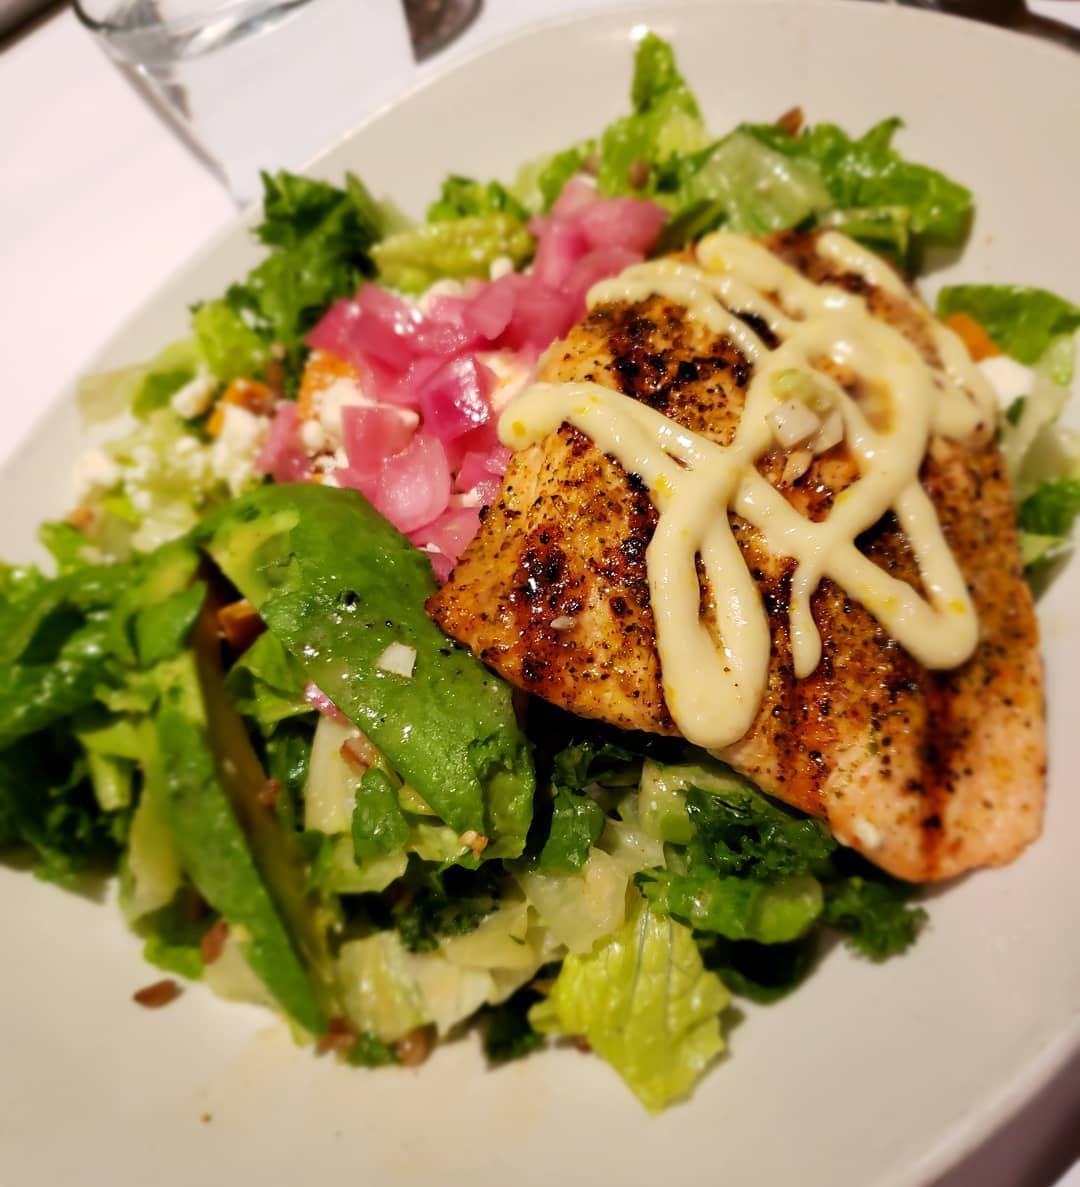 Salad entrée with fish on top from Bonefish Grill in Bothell, Washington.